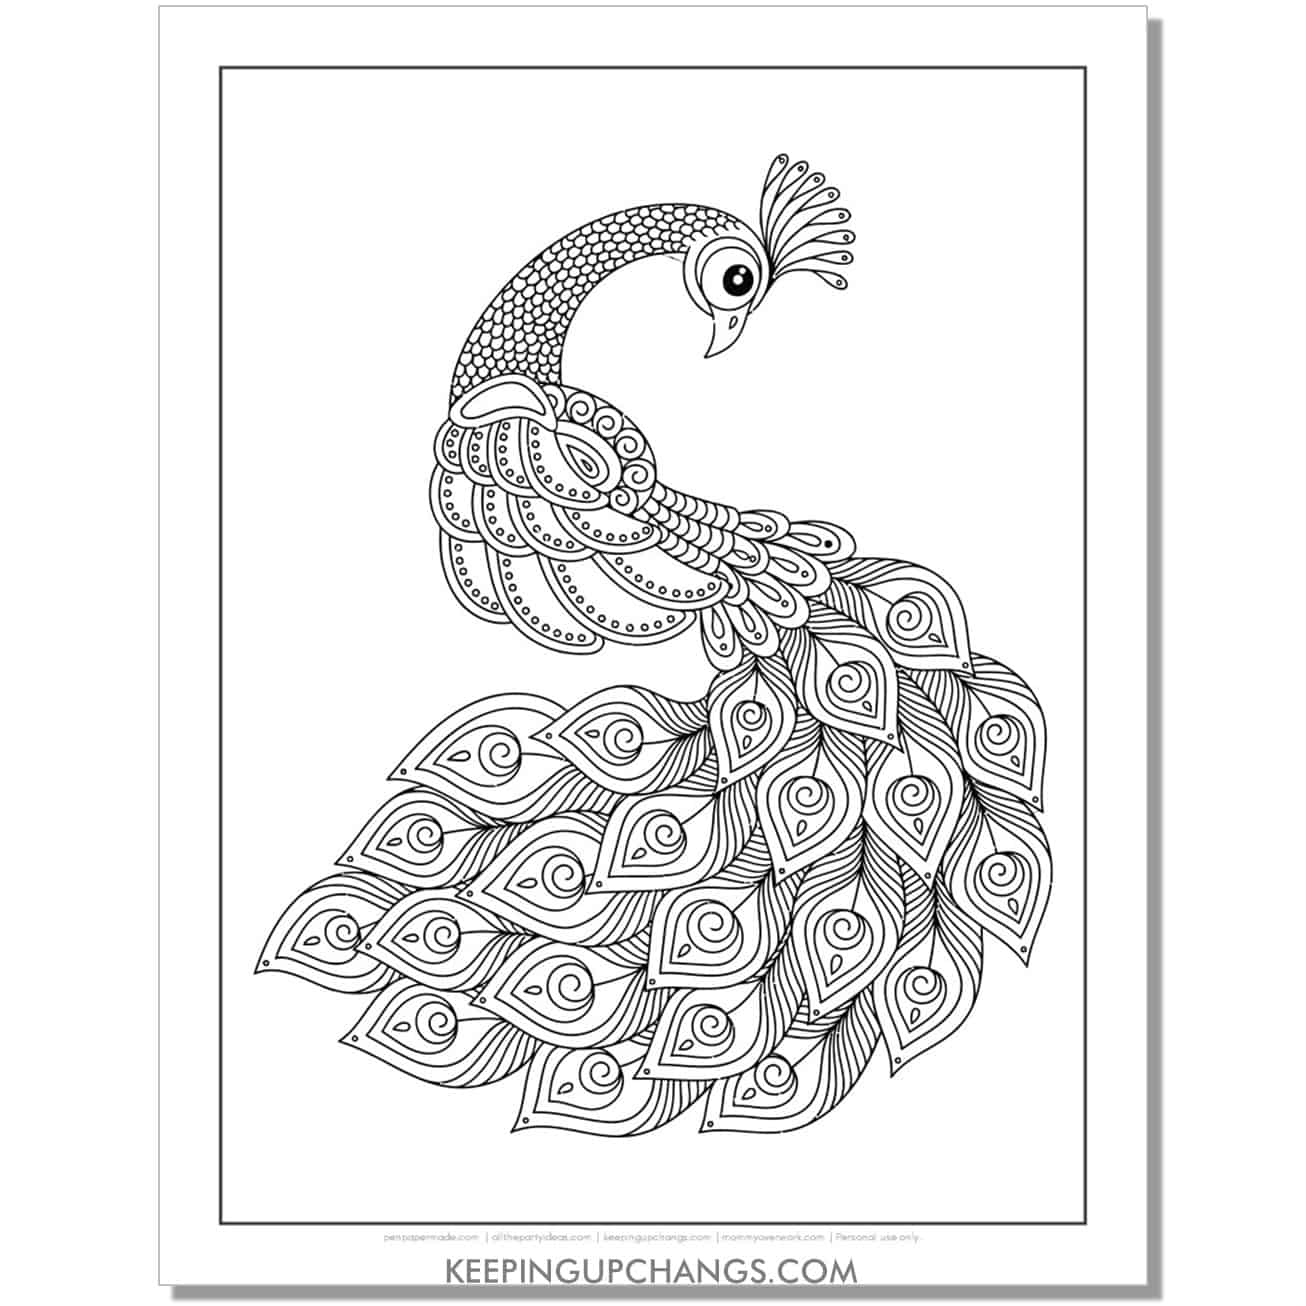 peacock coloring page with beautiful peacock feathers.